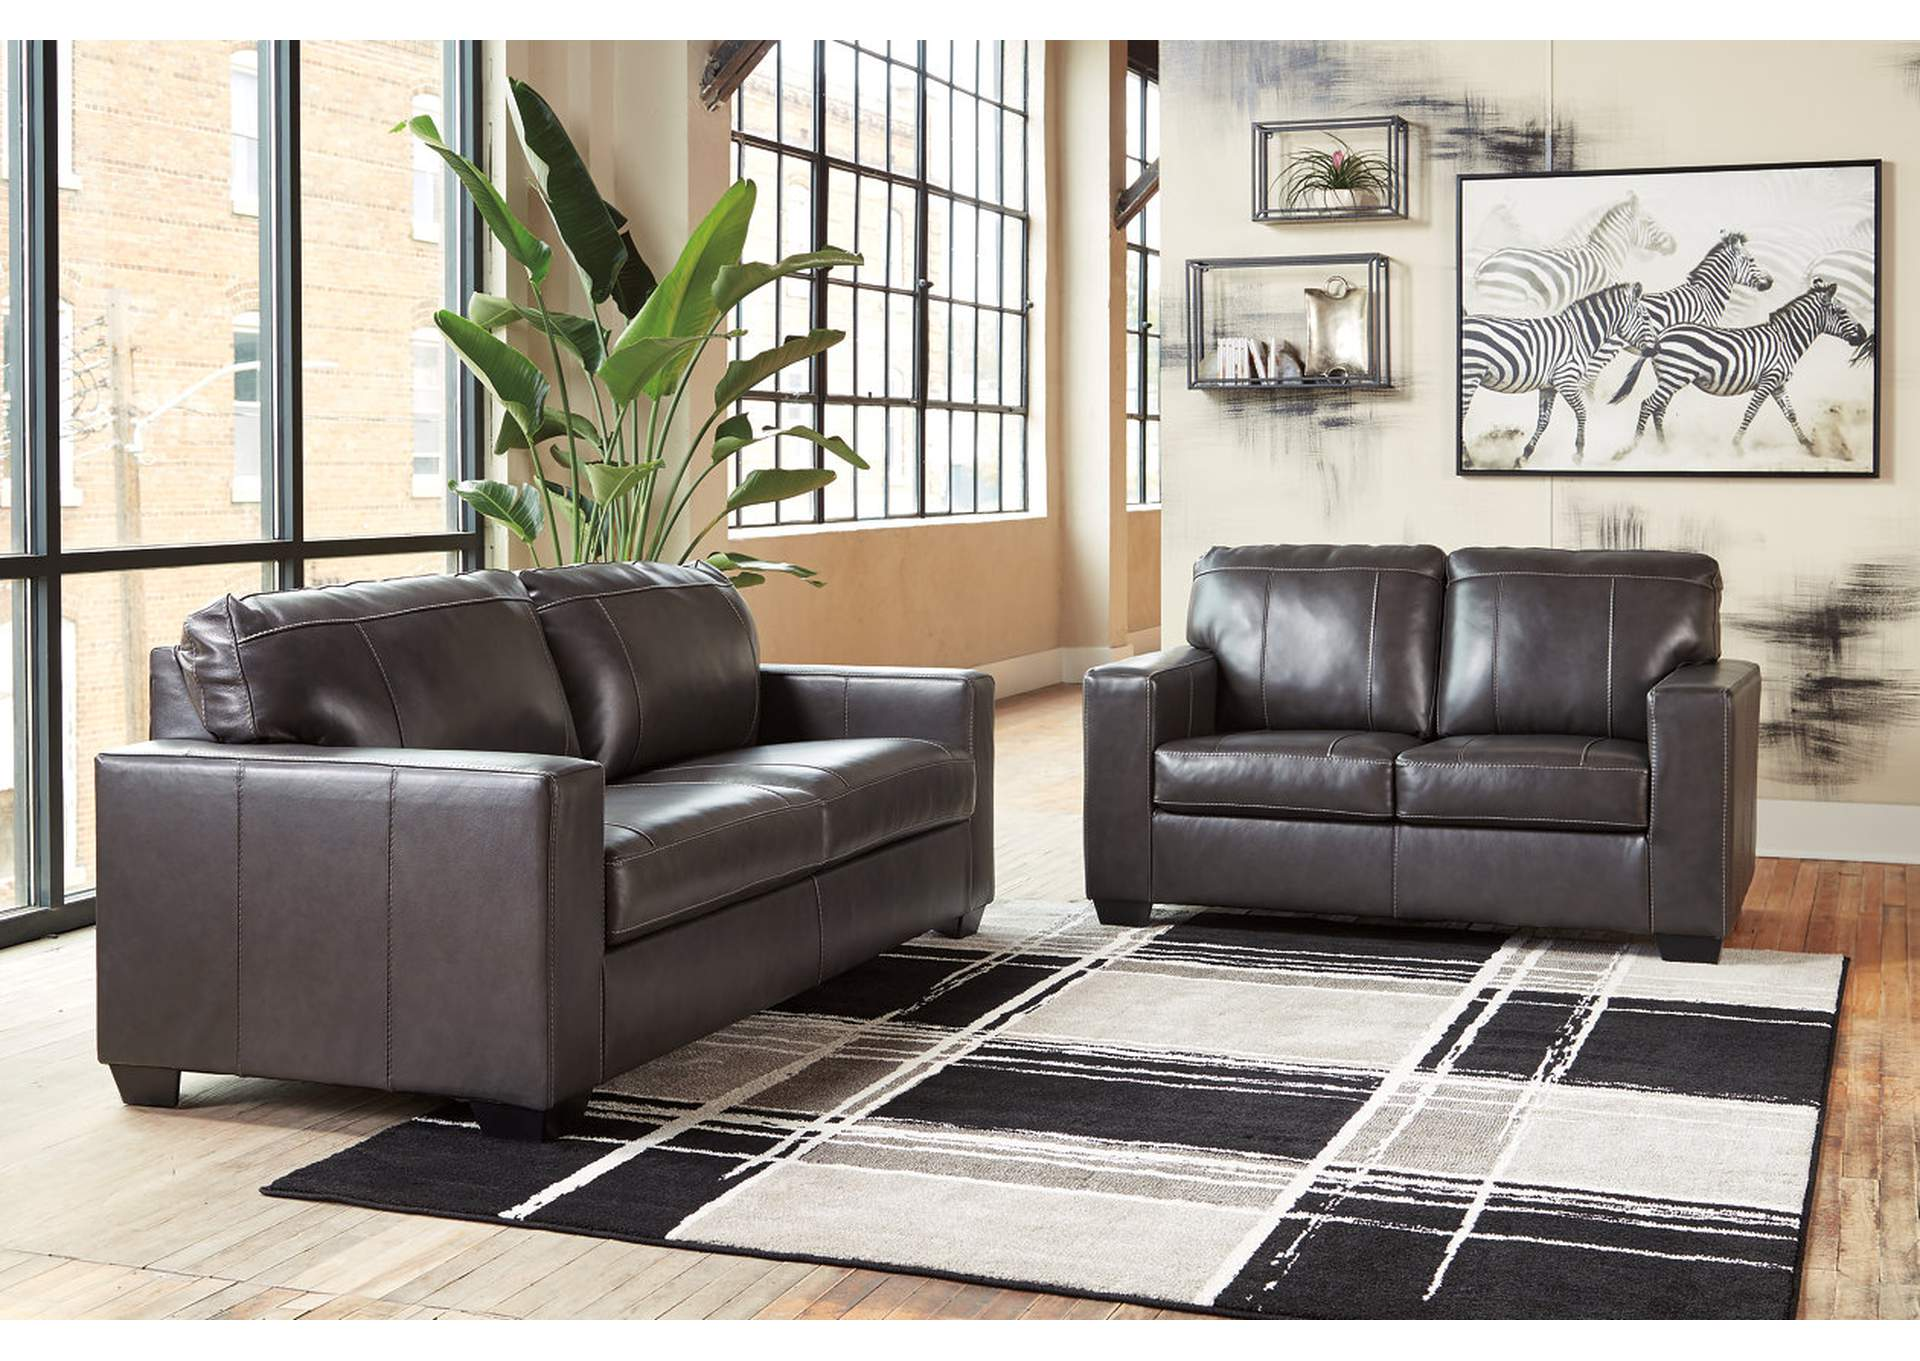 Morelos Sofa and Loveseat,Signature Design By Ashley